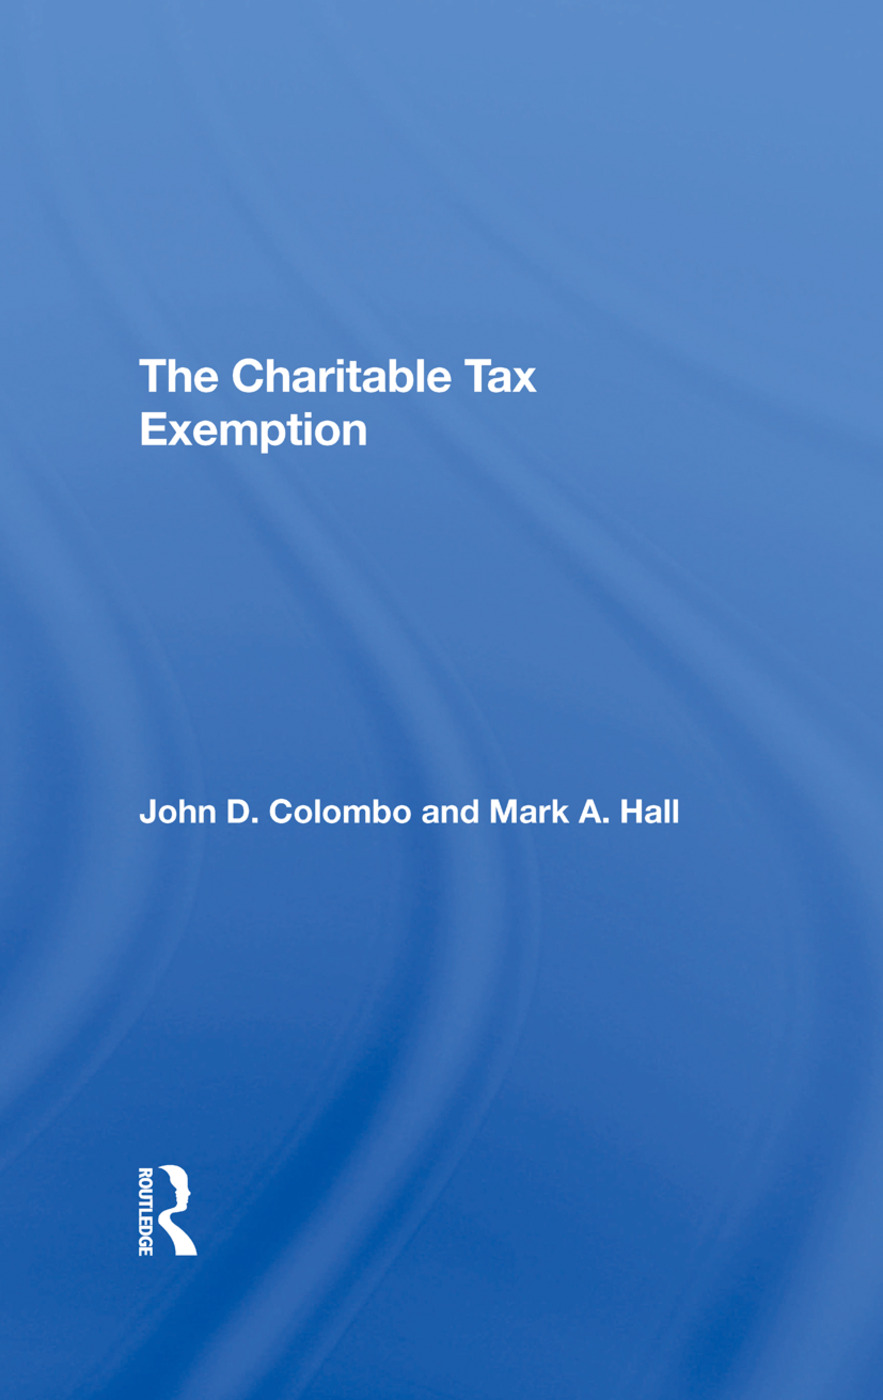 The Charitable Tax Exemption